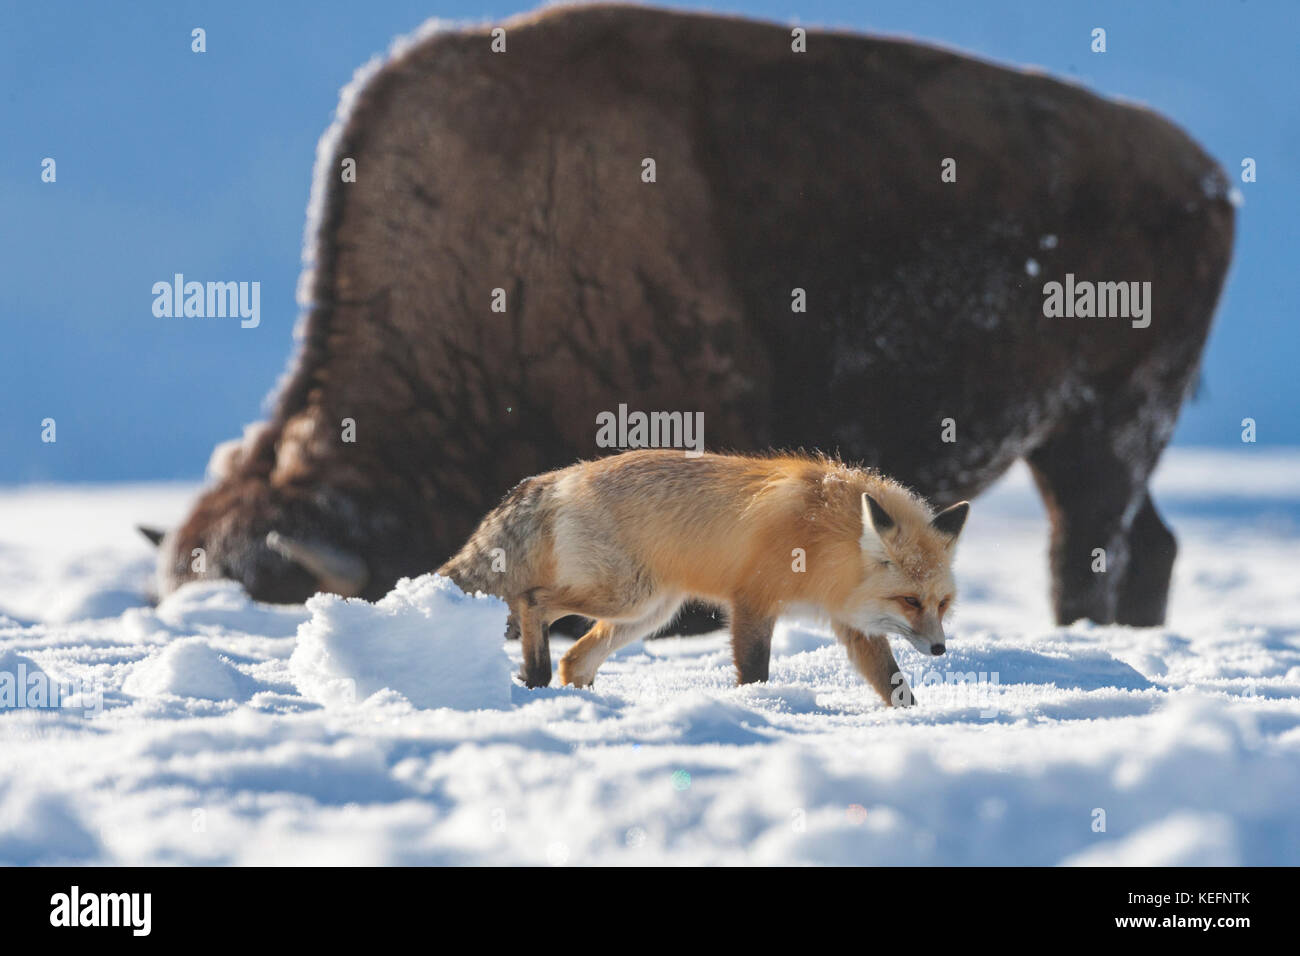 Red fox near bison during winter in Yellowstone National Park Stock Photo